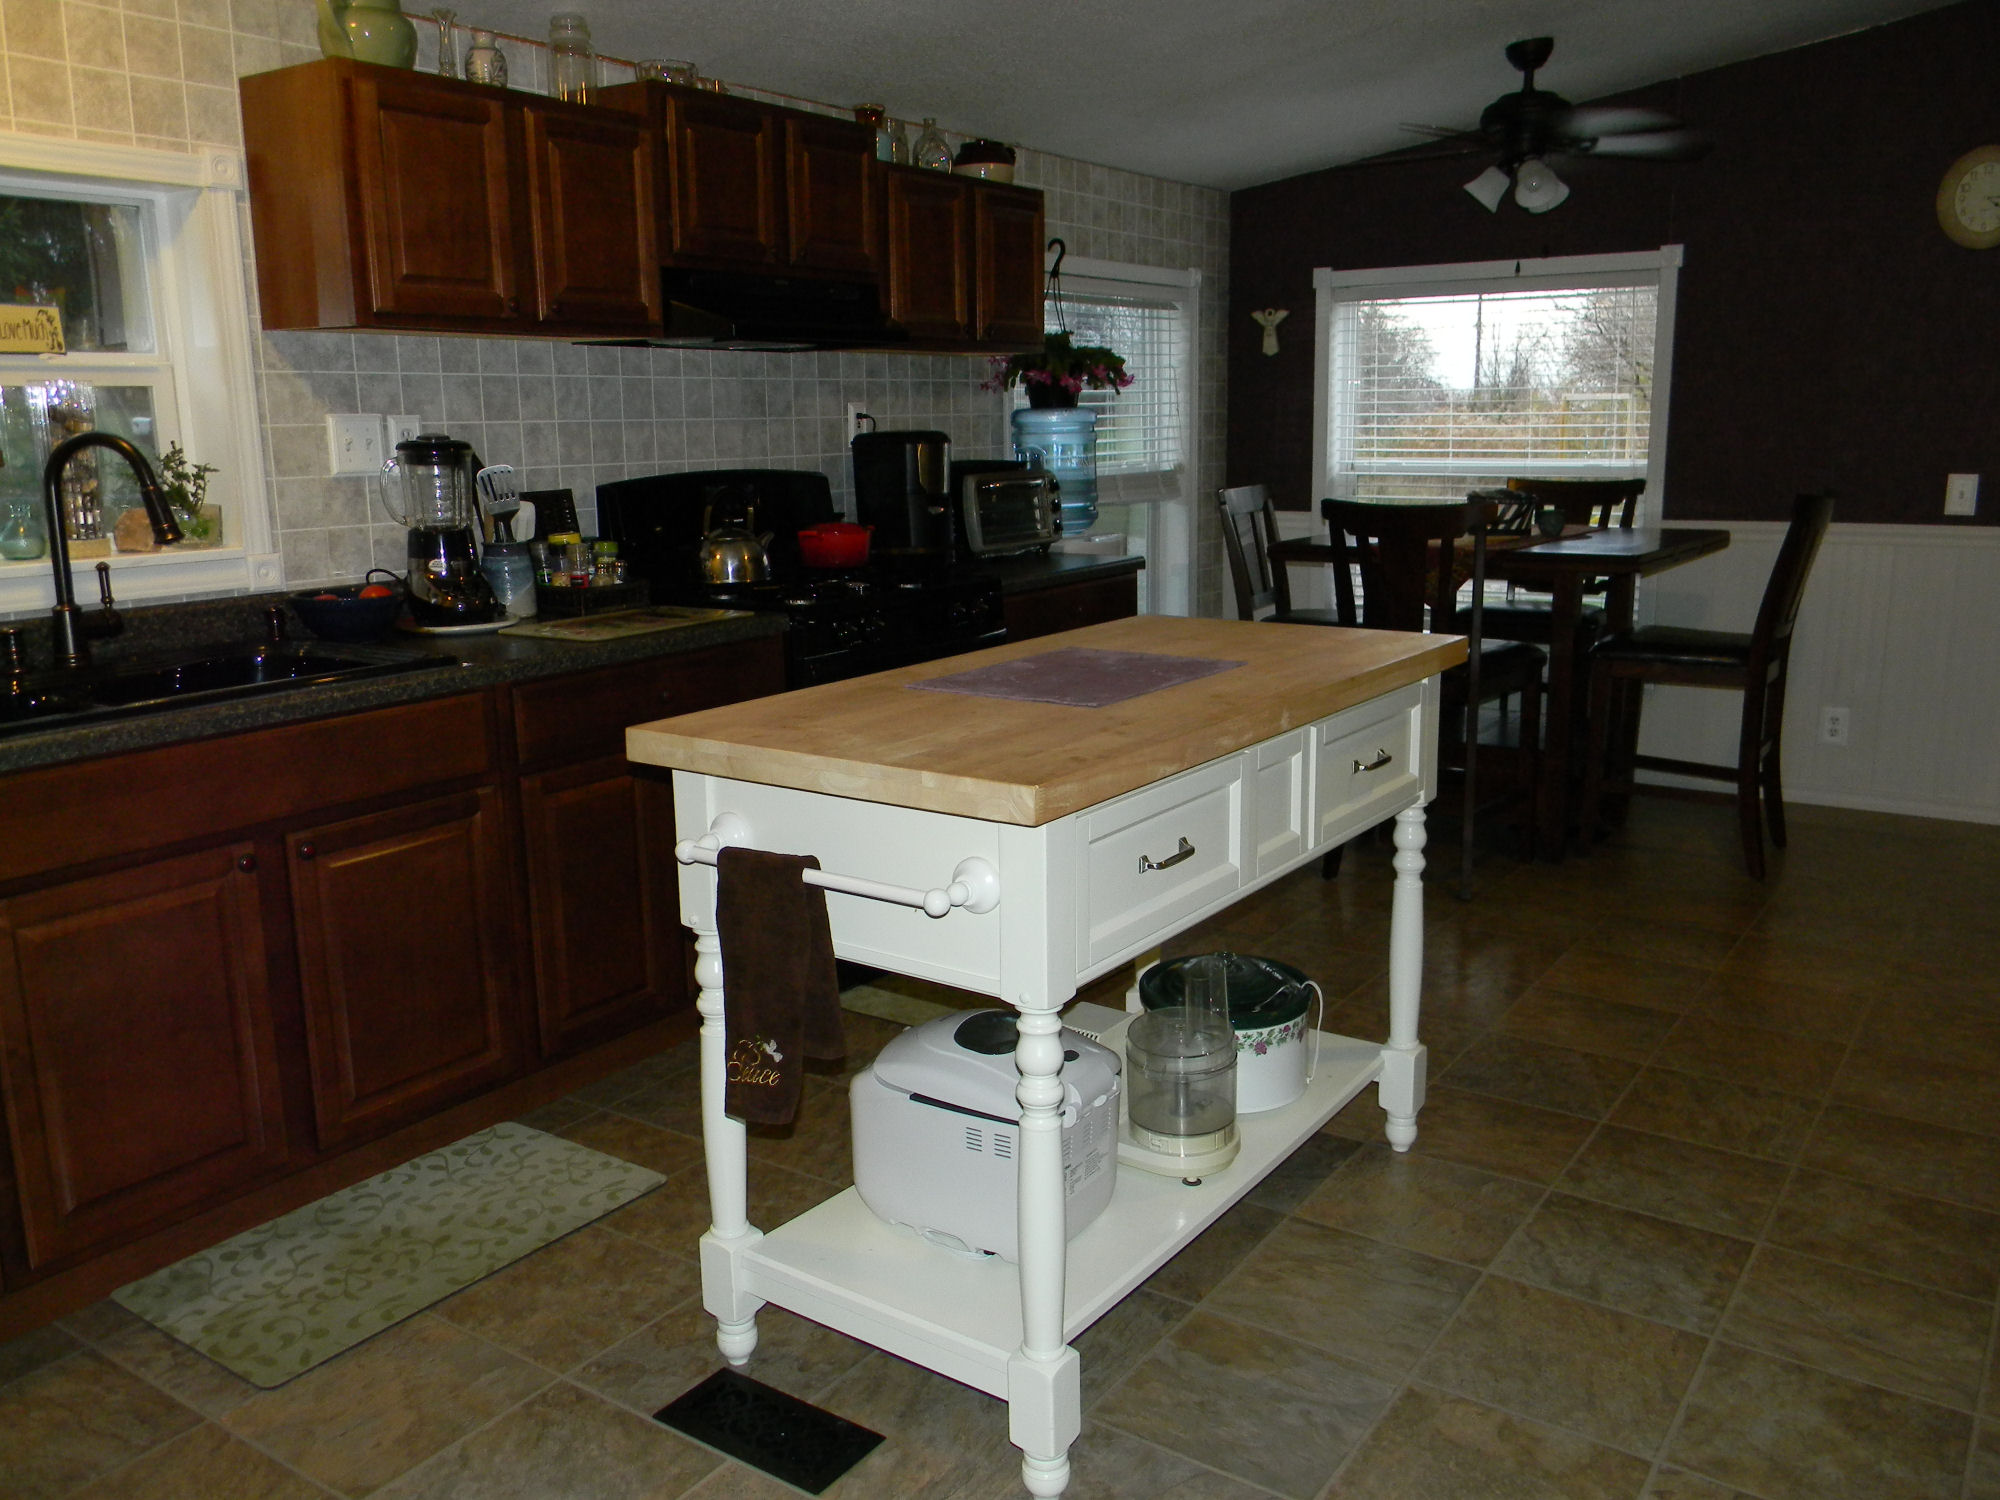 Mobile home kitchen remodel my mobile home makeover Mobile home kitchen remodel pictures